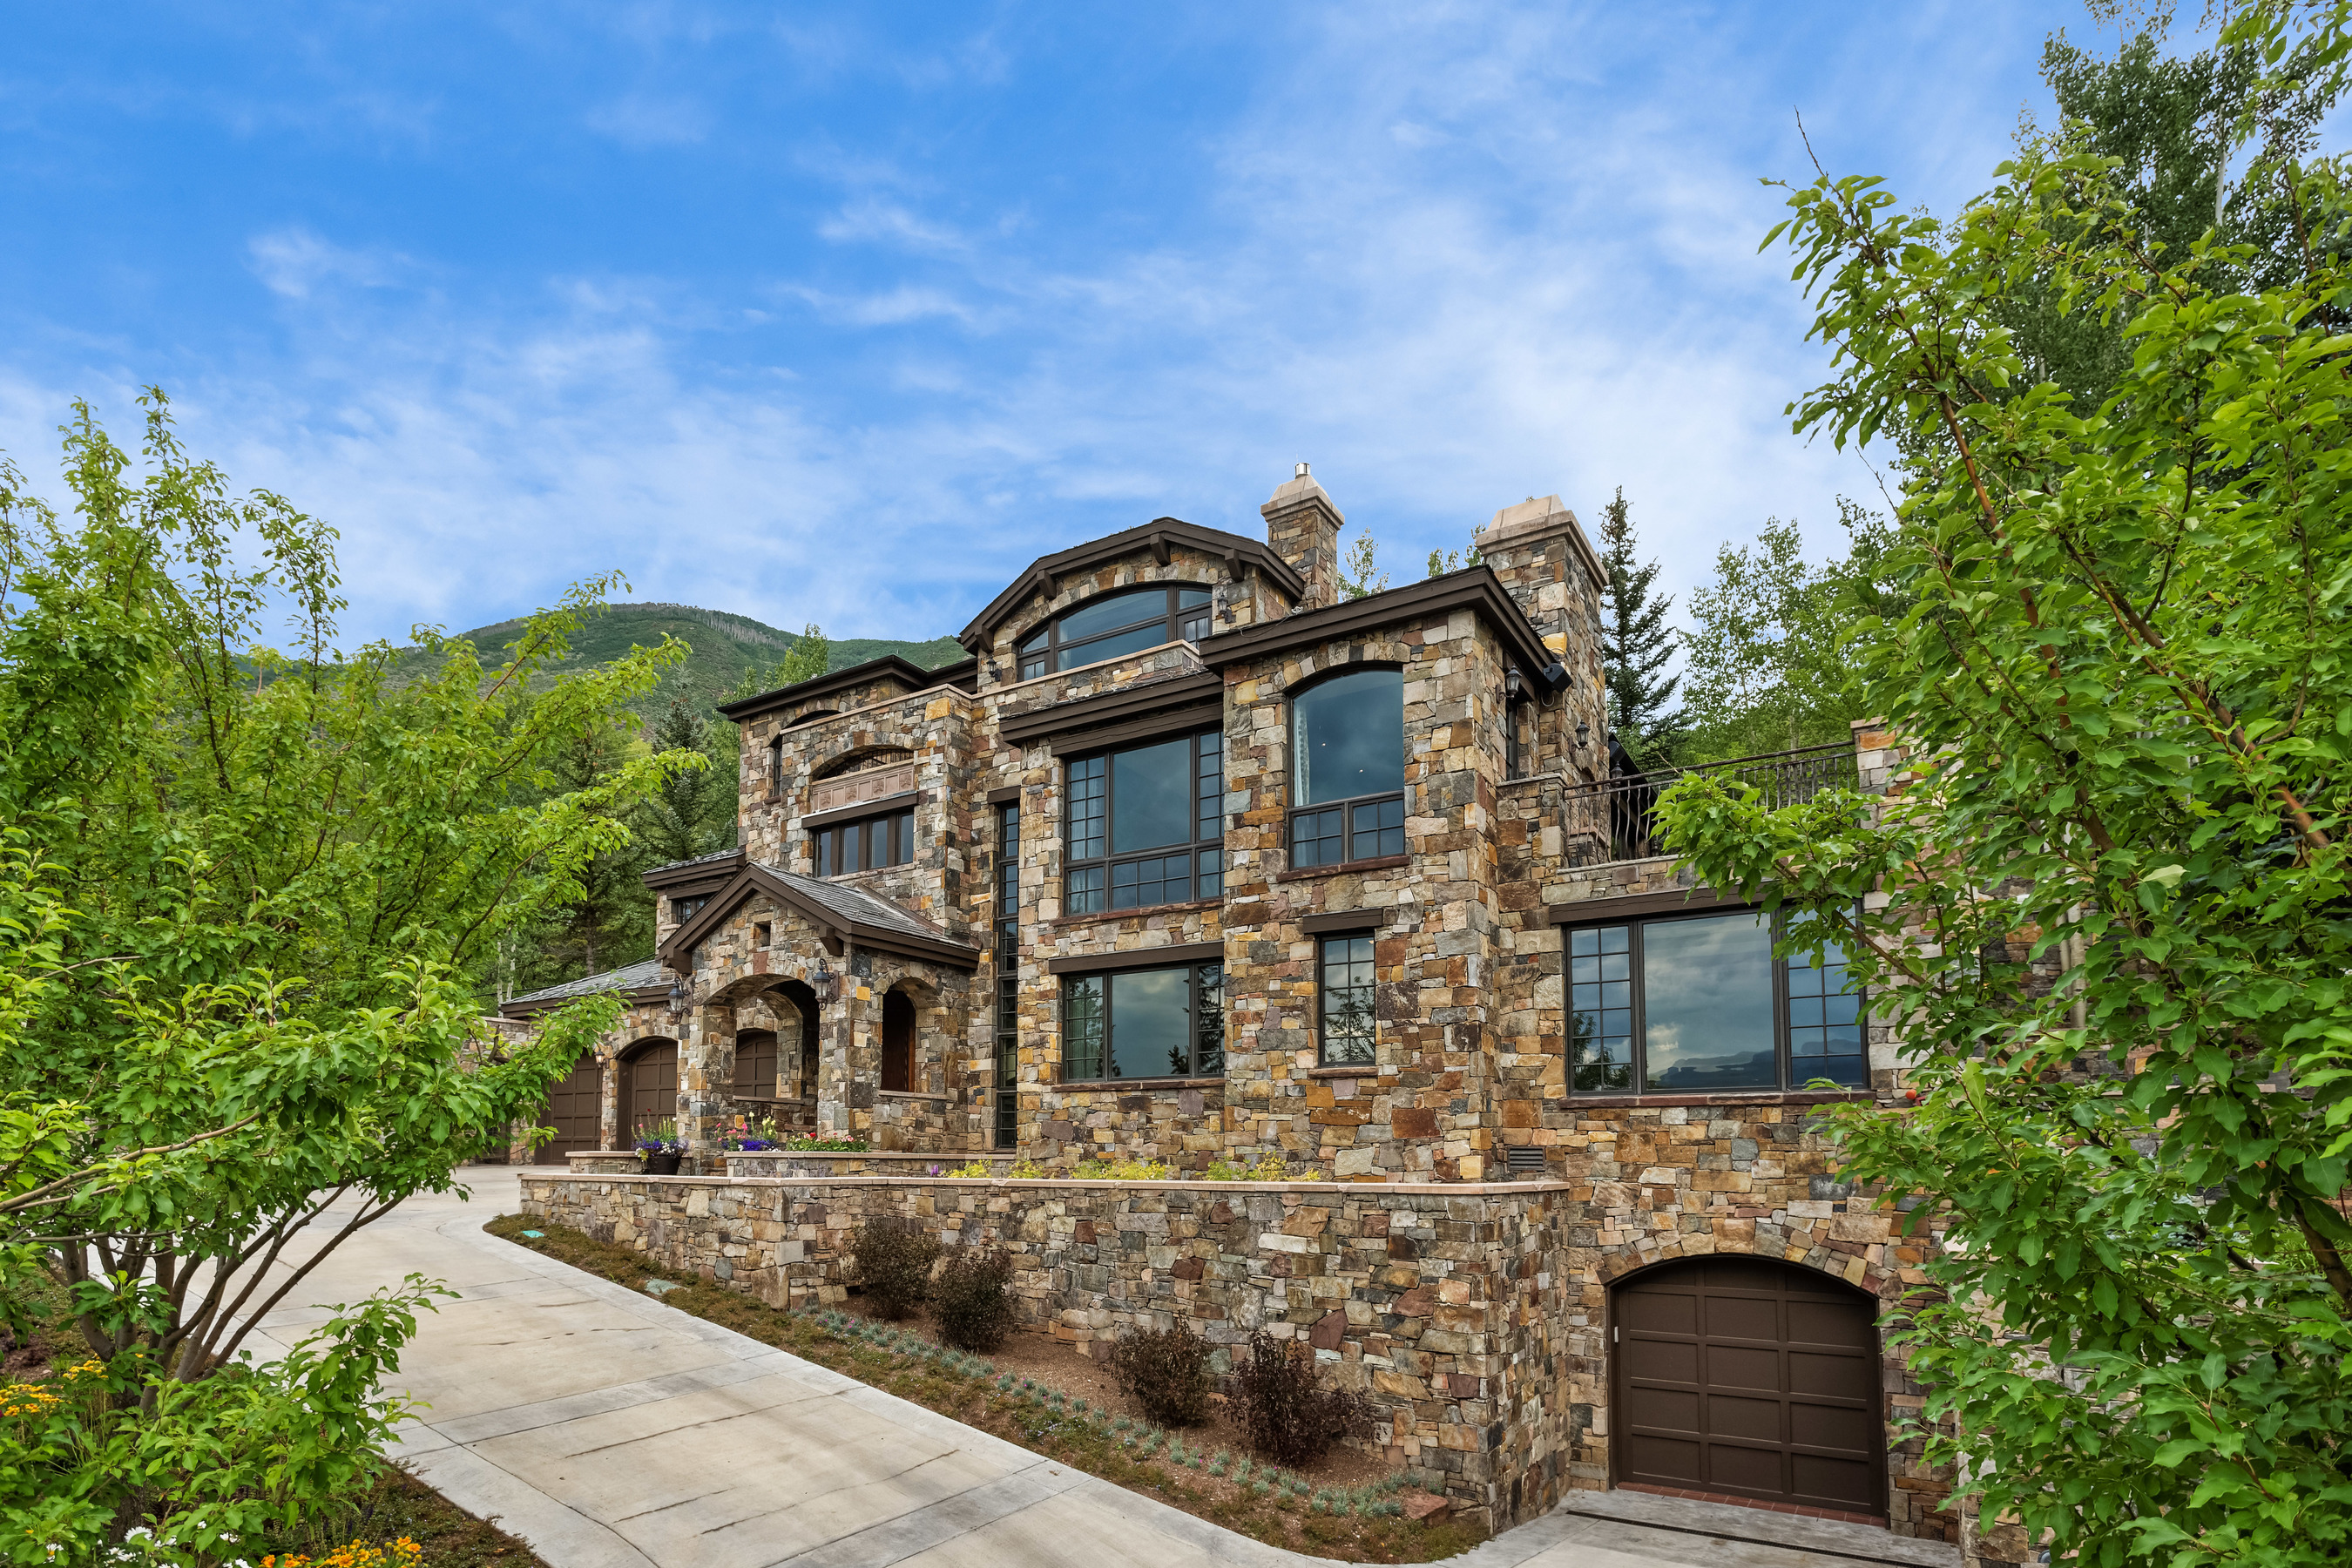 Villa per Vendita alle ore Elevated Living on Red Mountain 1124 Red Mountain Road Red Mountain, Aspen, Colorado, 81611 Stati Uniti